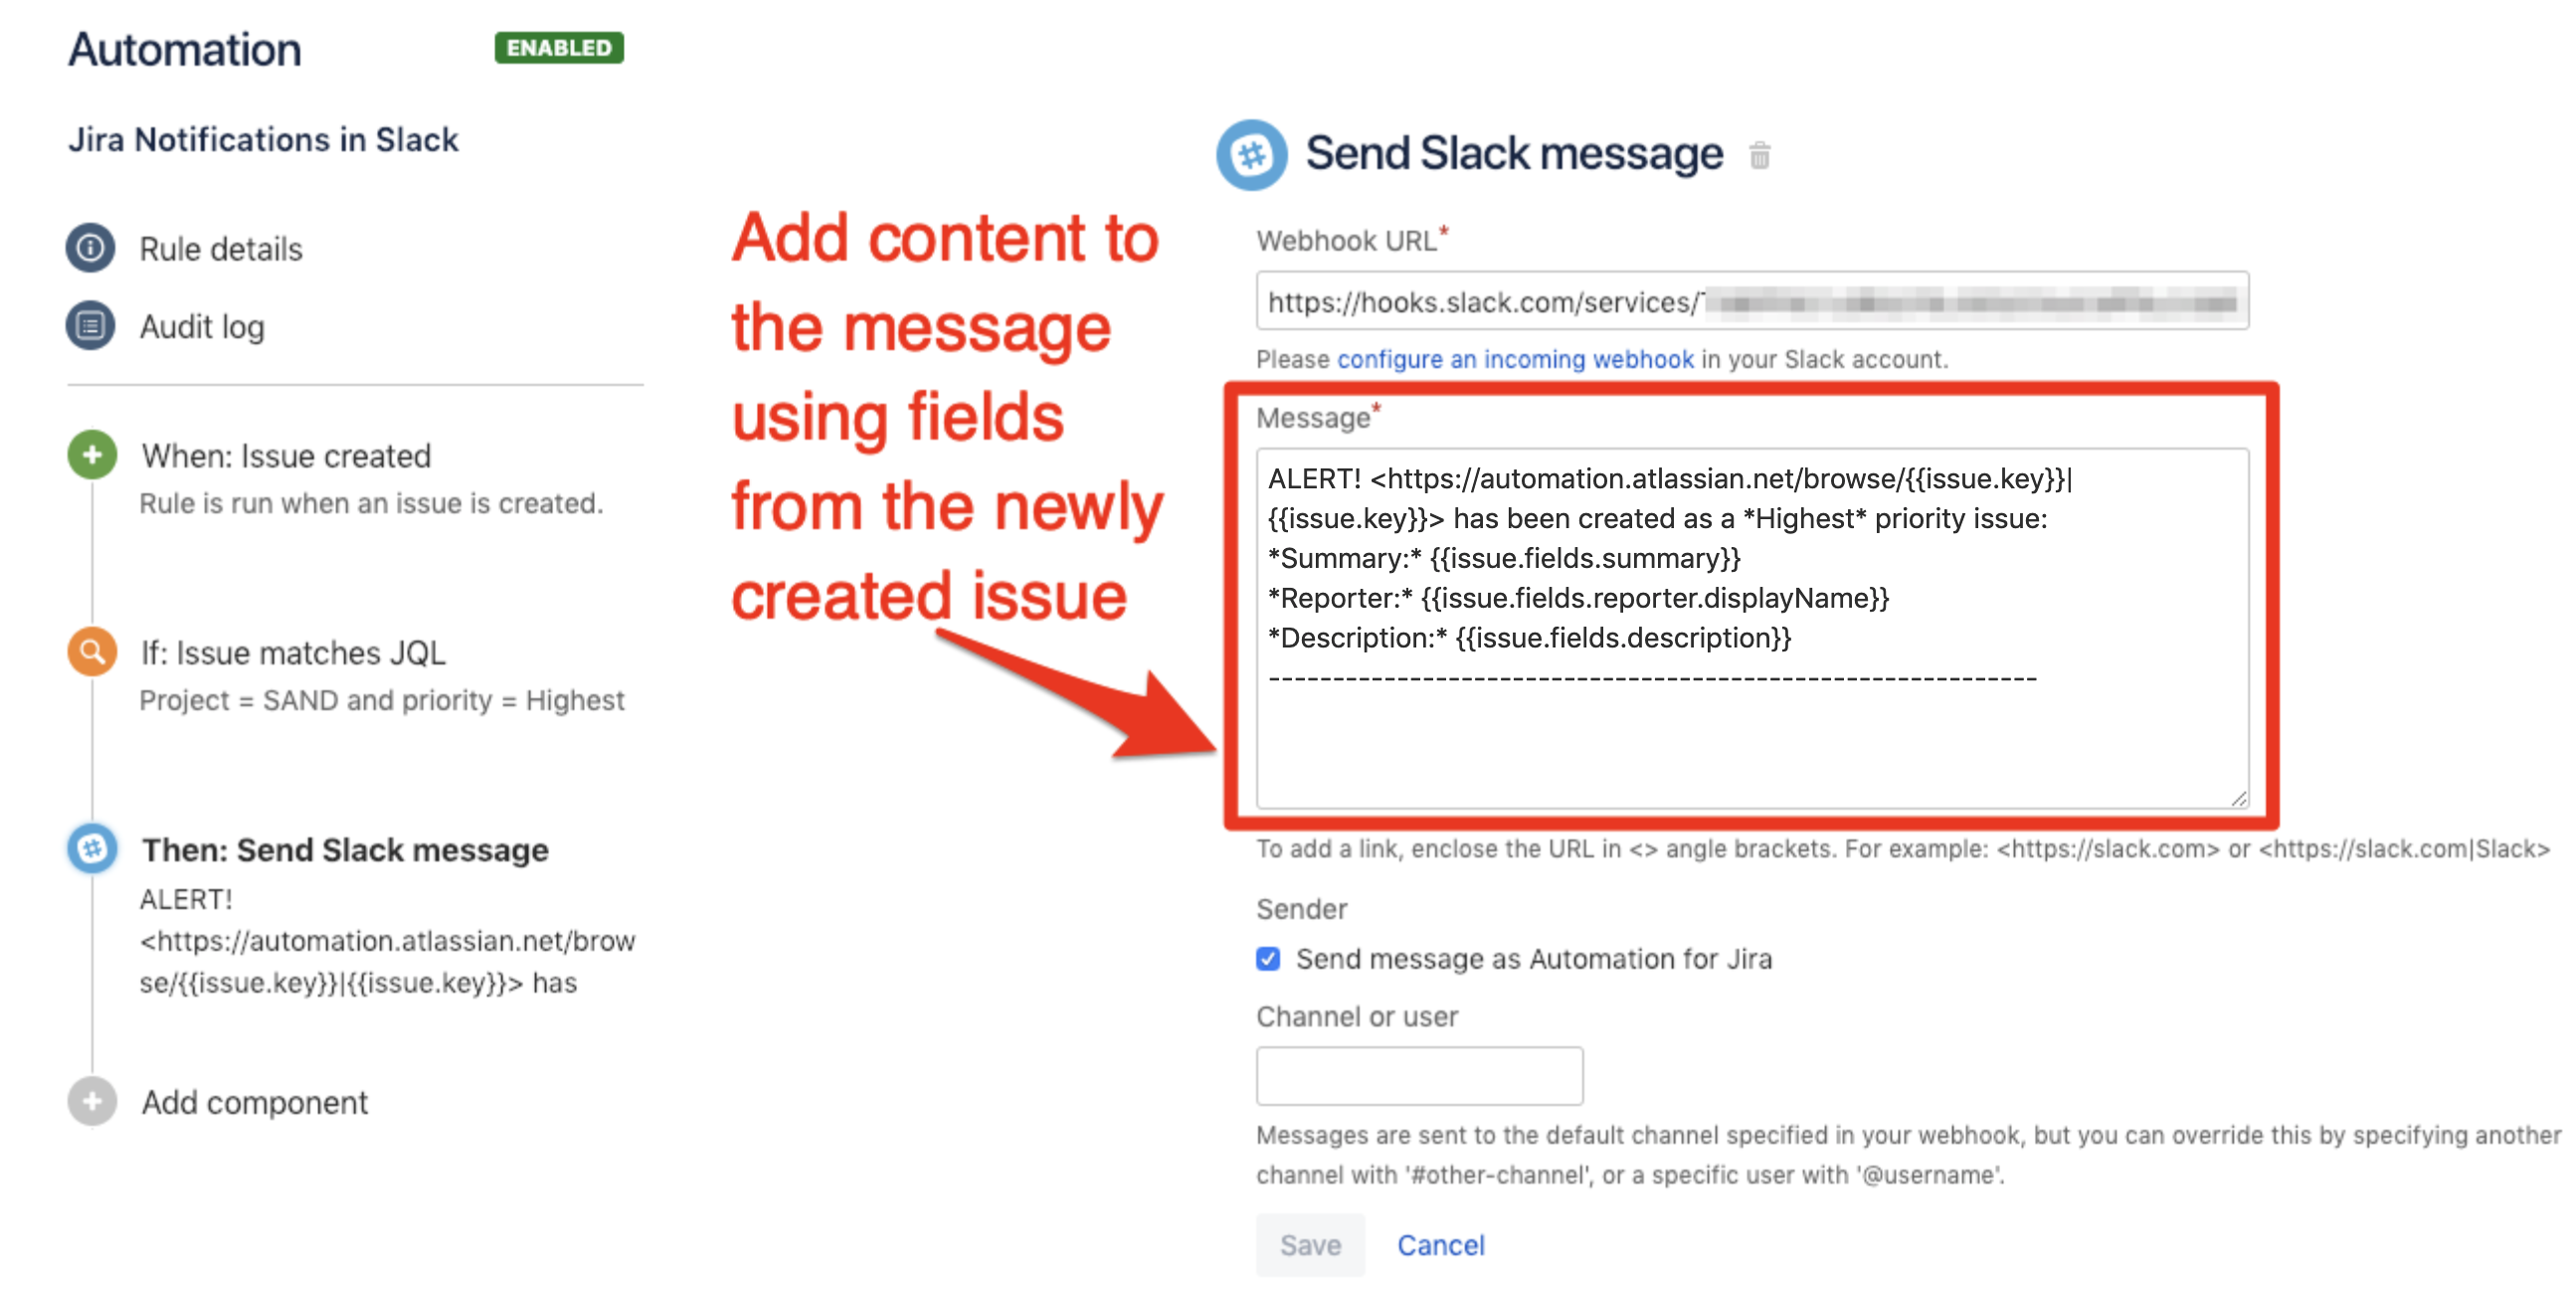 How to use Slack Messages with Automation for Jira